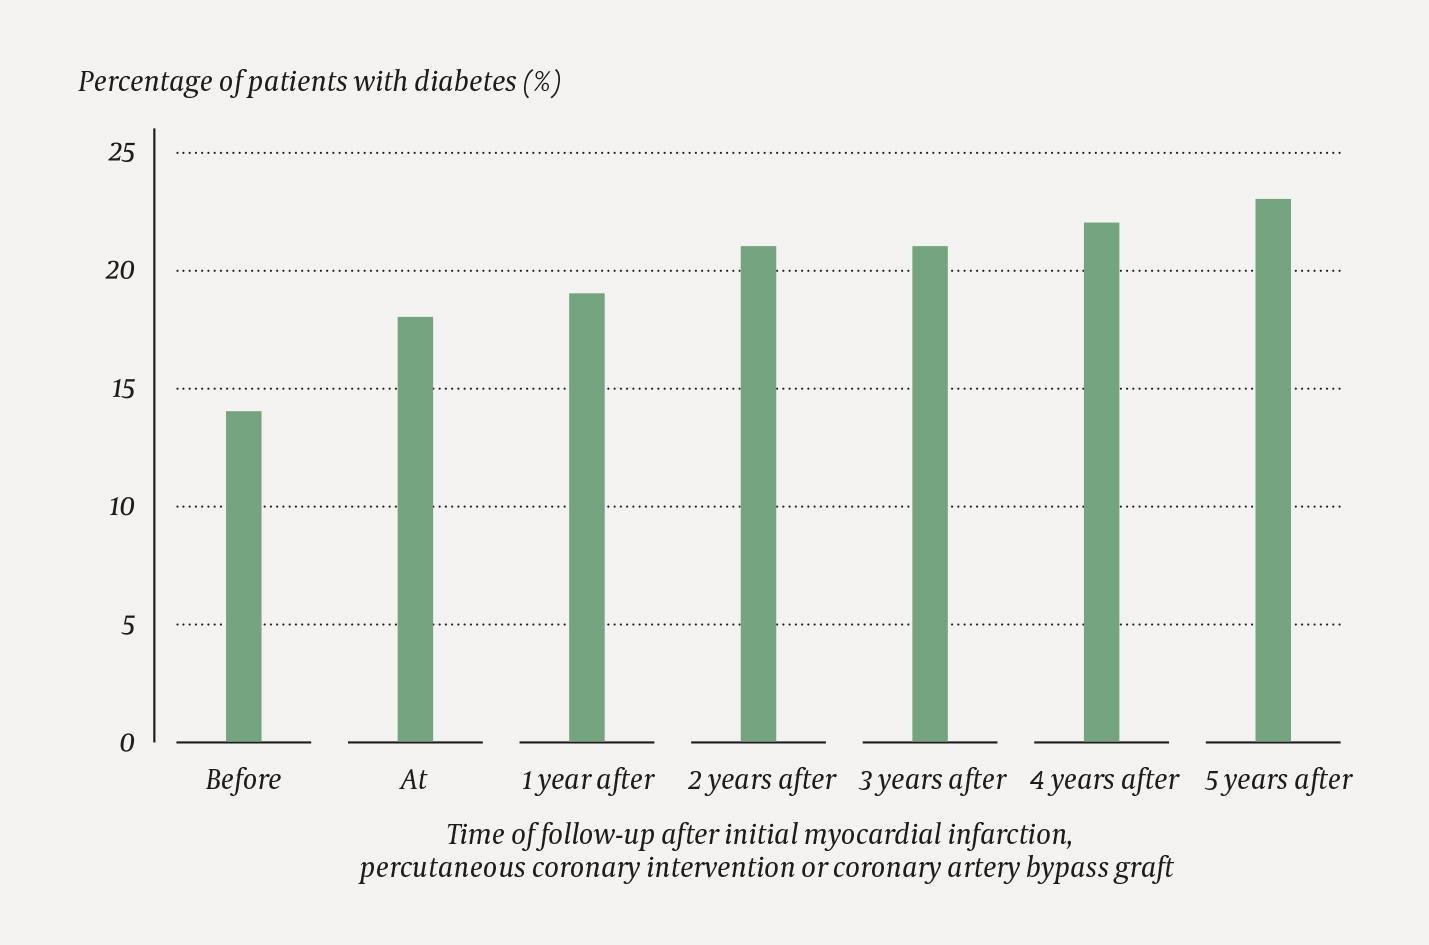 Prevalence Of Diabetes Before And After First Diagnosis Of Coronary Artery Disease